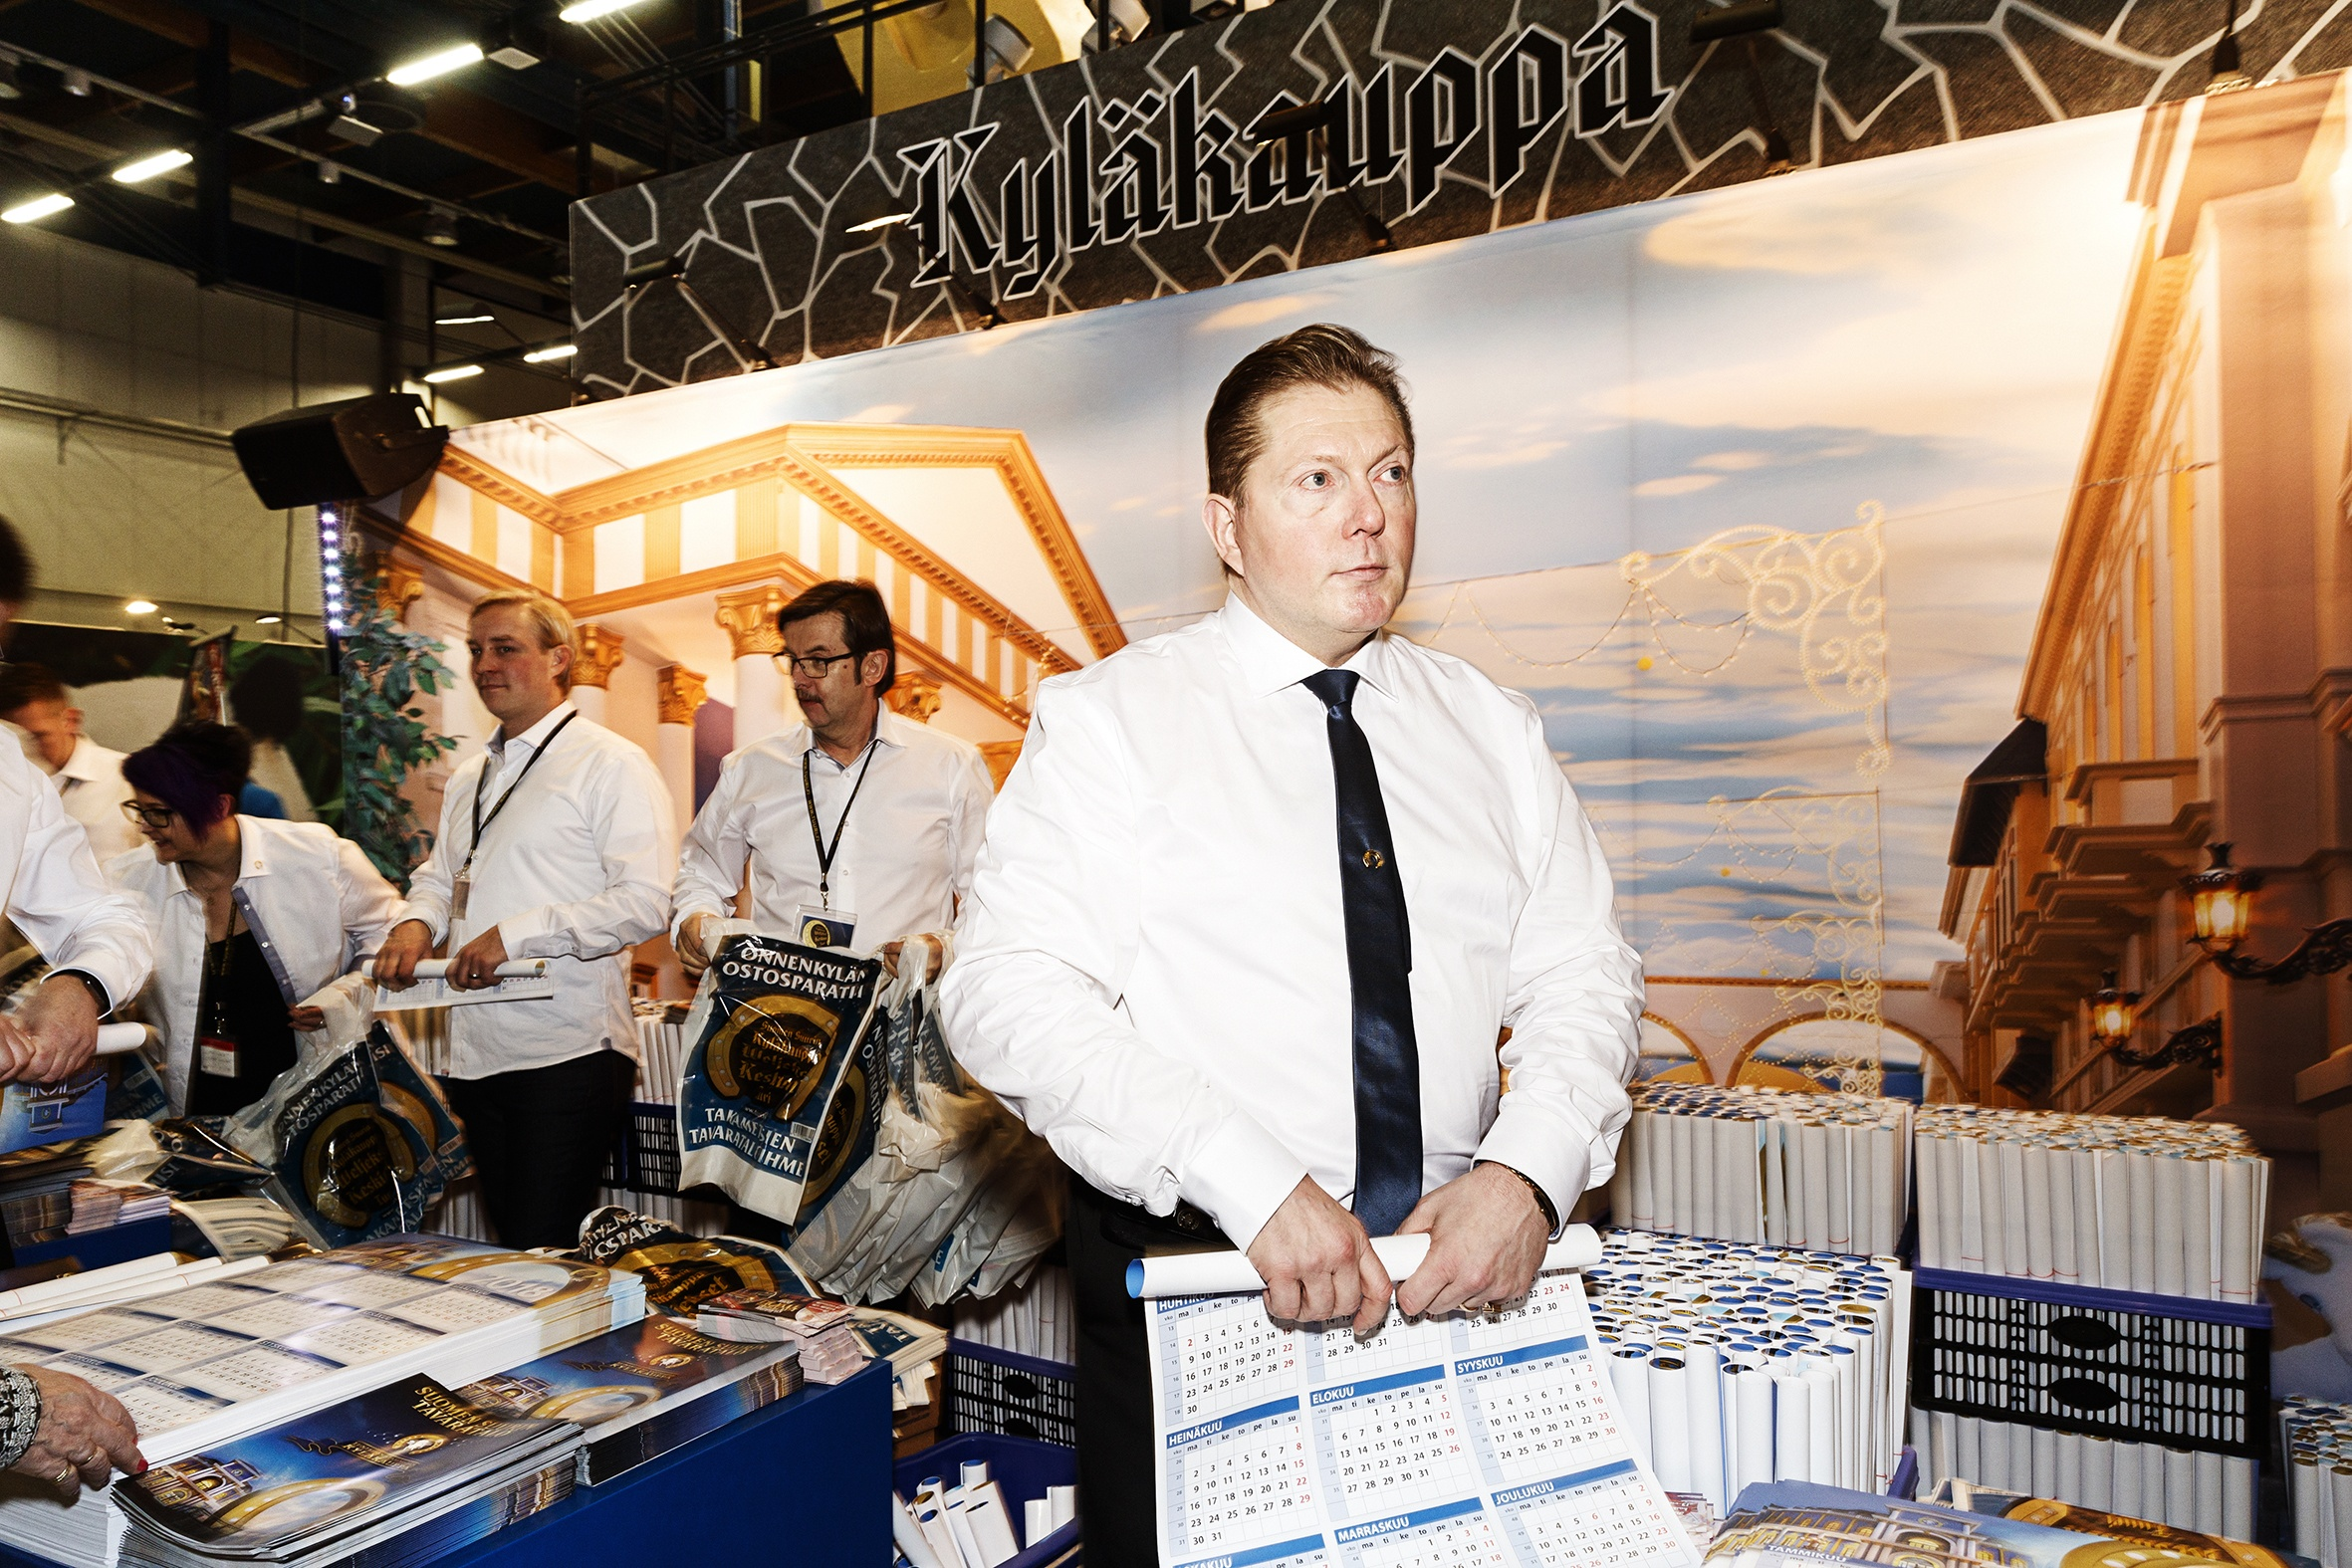 """Vesa Keskinen is one of the most famous businessmen inside Finland's borders, and his department store in Tuuri gathers millions of visitors every year. Keskinen's first time at the Matka fair was back in 1996. """"I was walking around with a two-kilogram golden horseshoe telling everyone about the store,"""" he recalls. """"No one had heard about it, but everyone wanted to try holding the horseshoe. Security had to keep a keen eye on me, as its value was about 70 000 euros."""""""